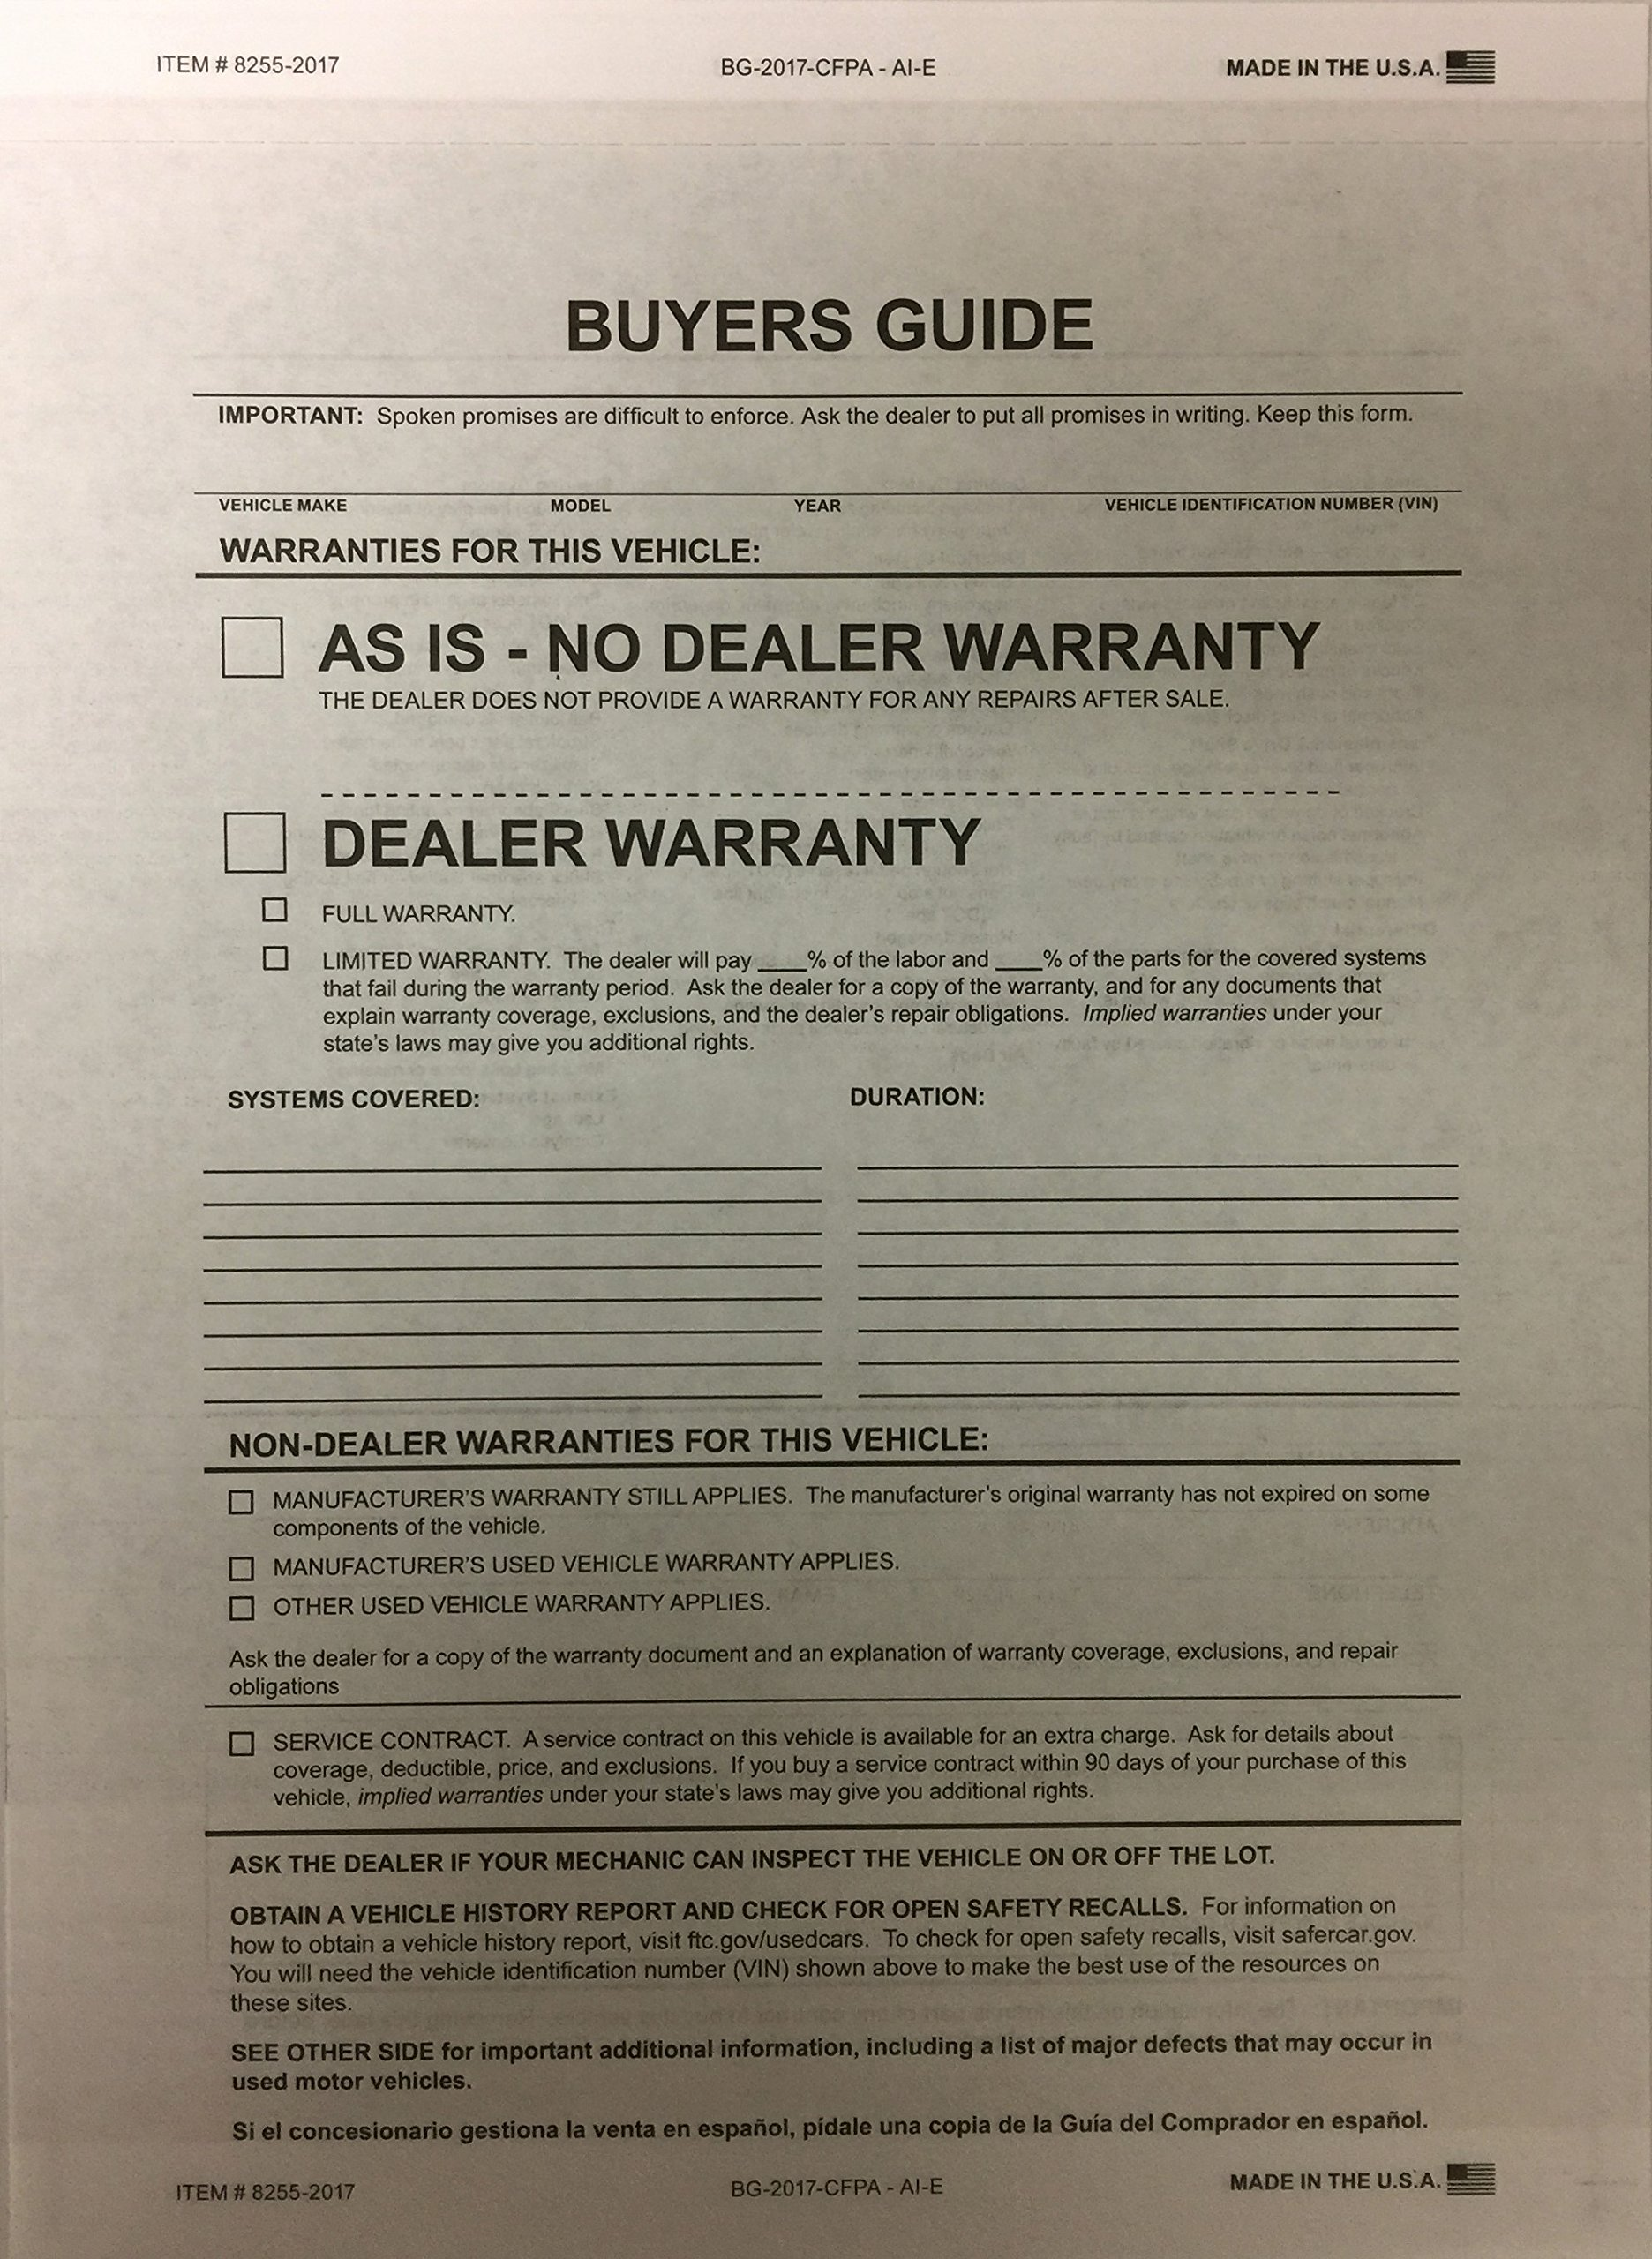 Buyers Guide - 2 Part -100 Qty. #8255-2017 by A Plus